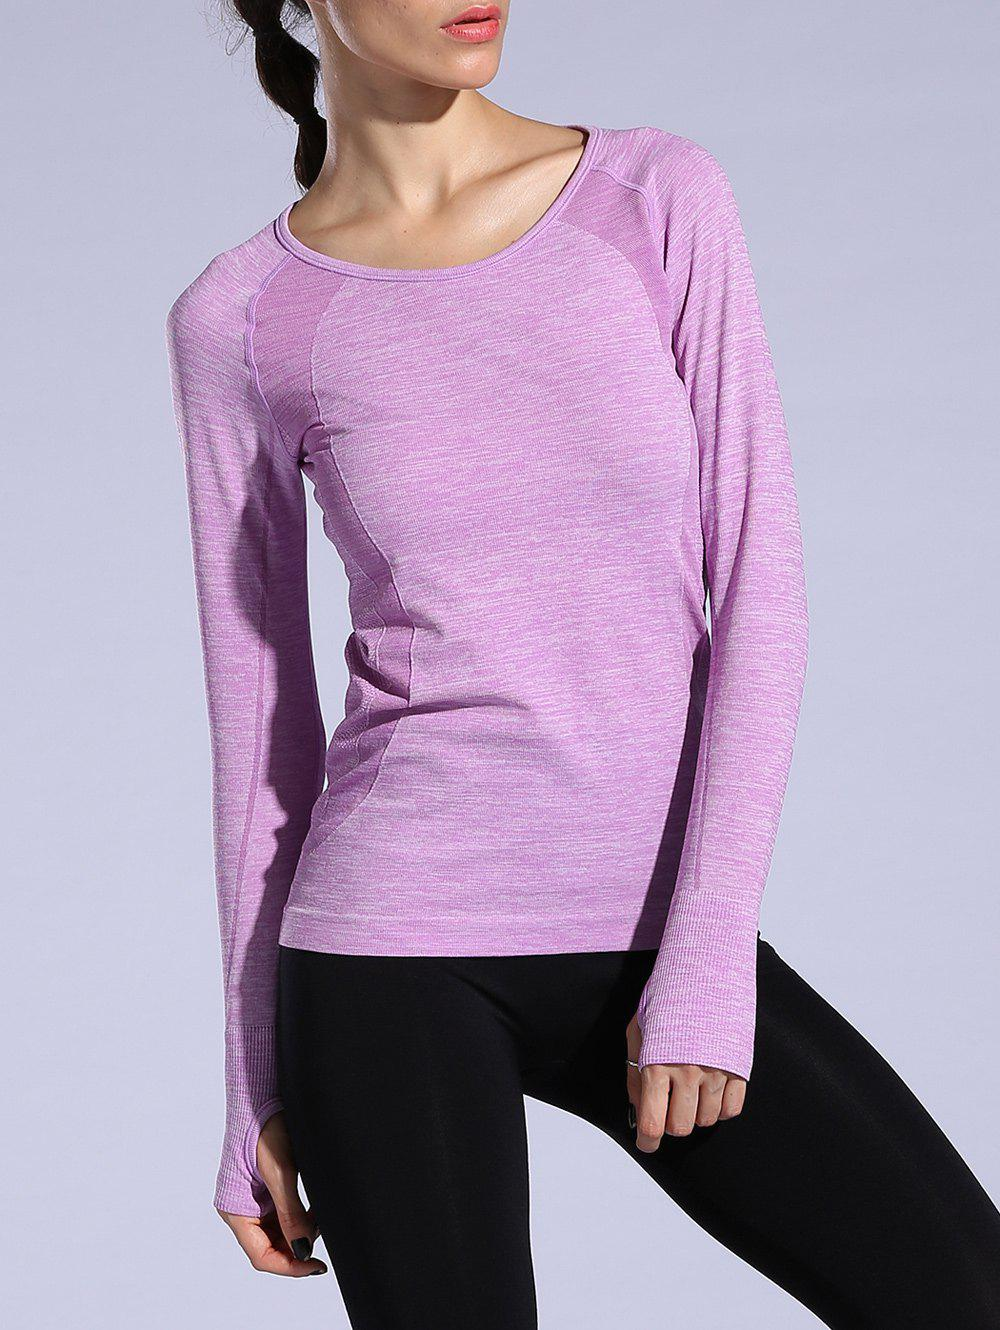 T-shirt sportif Heathered Dry-rapide Violet clair M